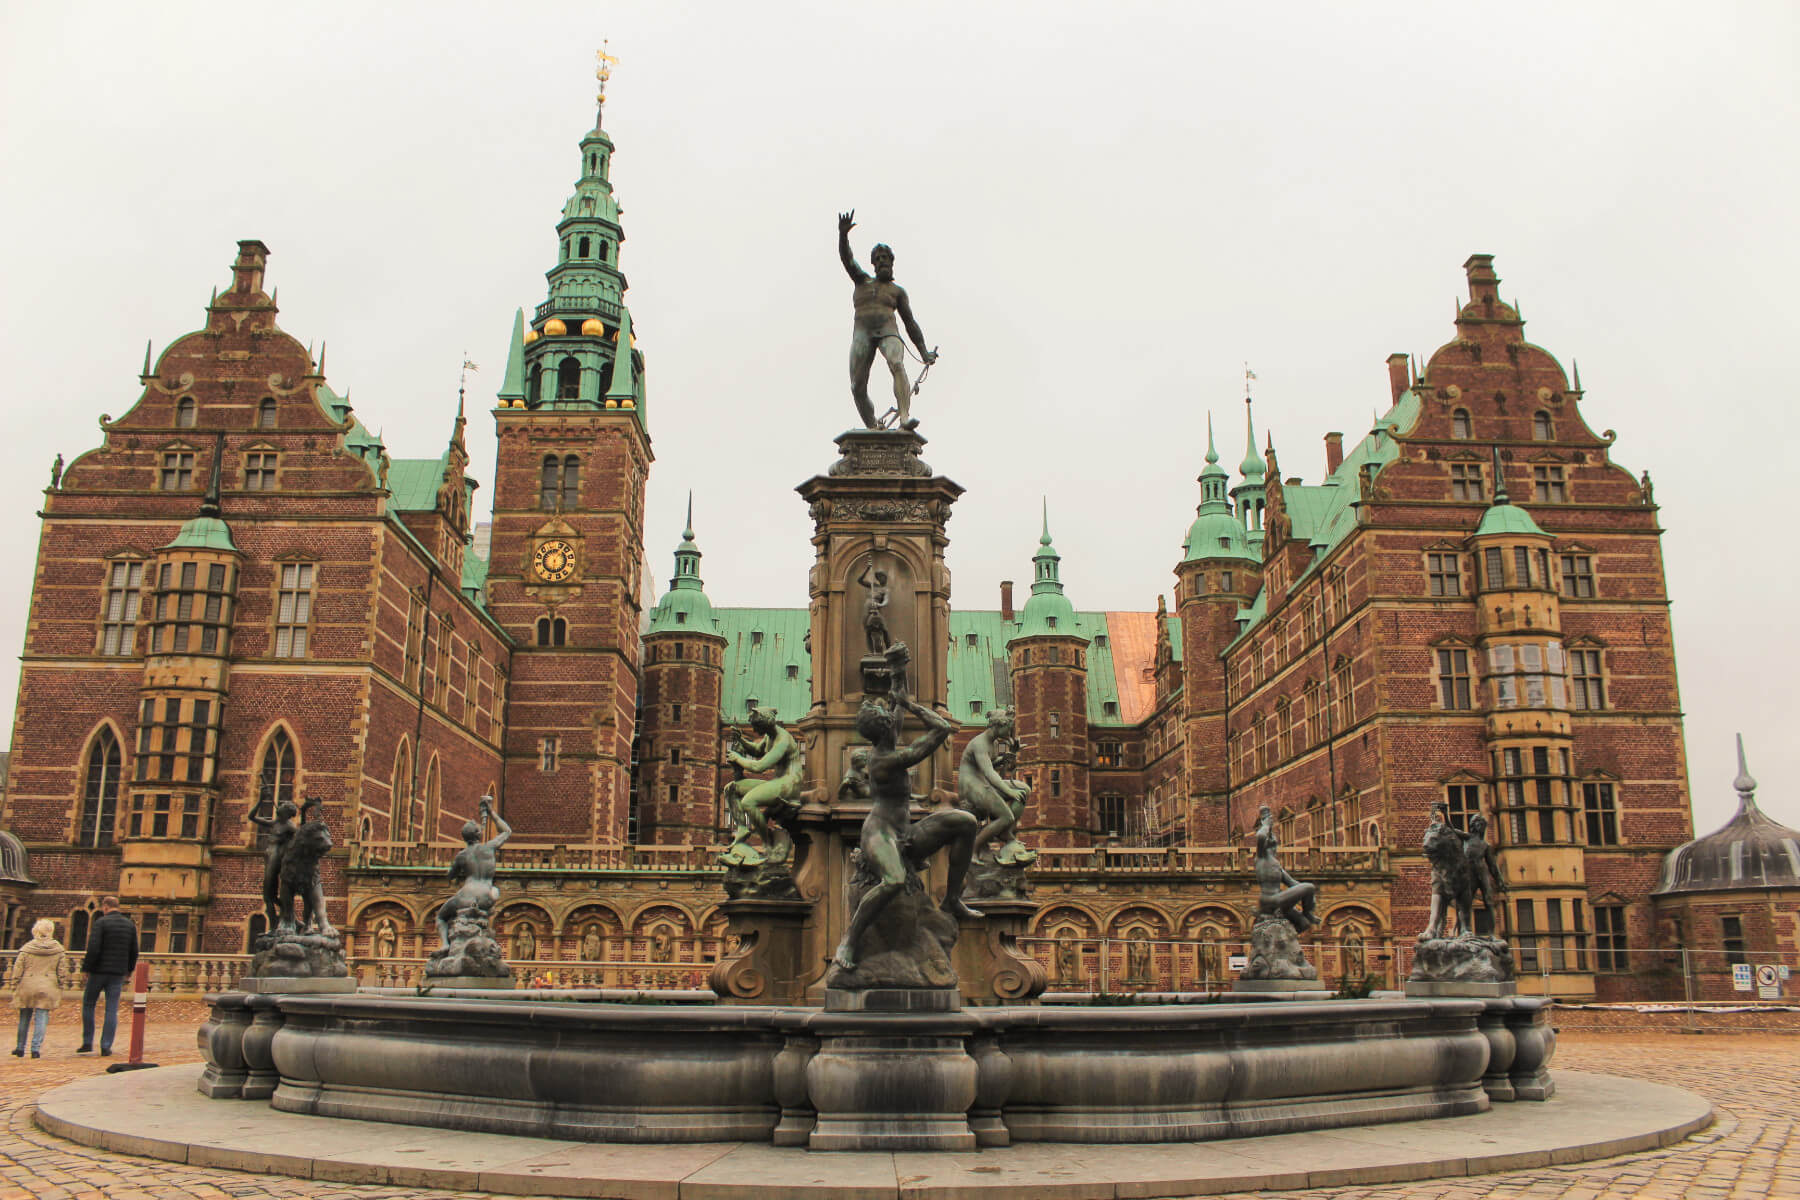 The courtyard of stunning Frederiksborg Castle near Copenhagen, Denmark on a winter day.